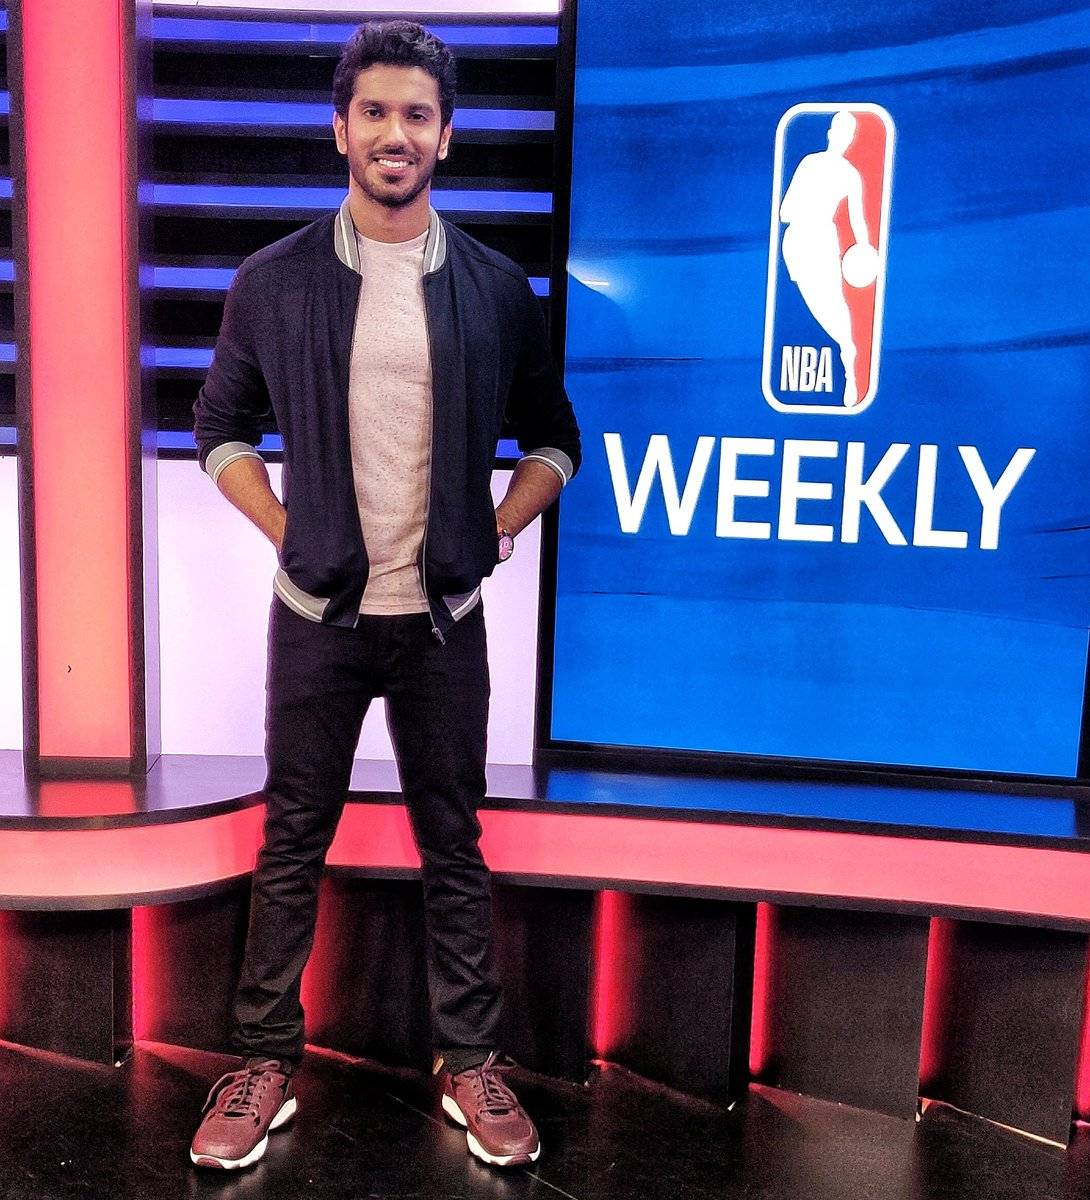 Hey folks! Do Watch me Host #NBAWeekly tomorrow (Sunday) at 3 pm only on Sony Ten 2.  #Television #NBA  #TVShow #Anchor #SonySports <br>http://pic.twitter.com/CRuxs43KUj